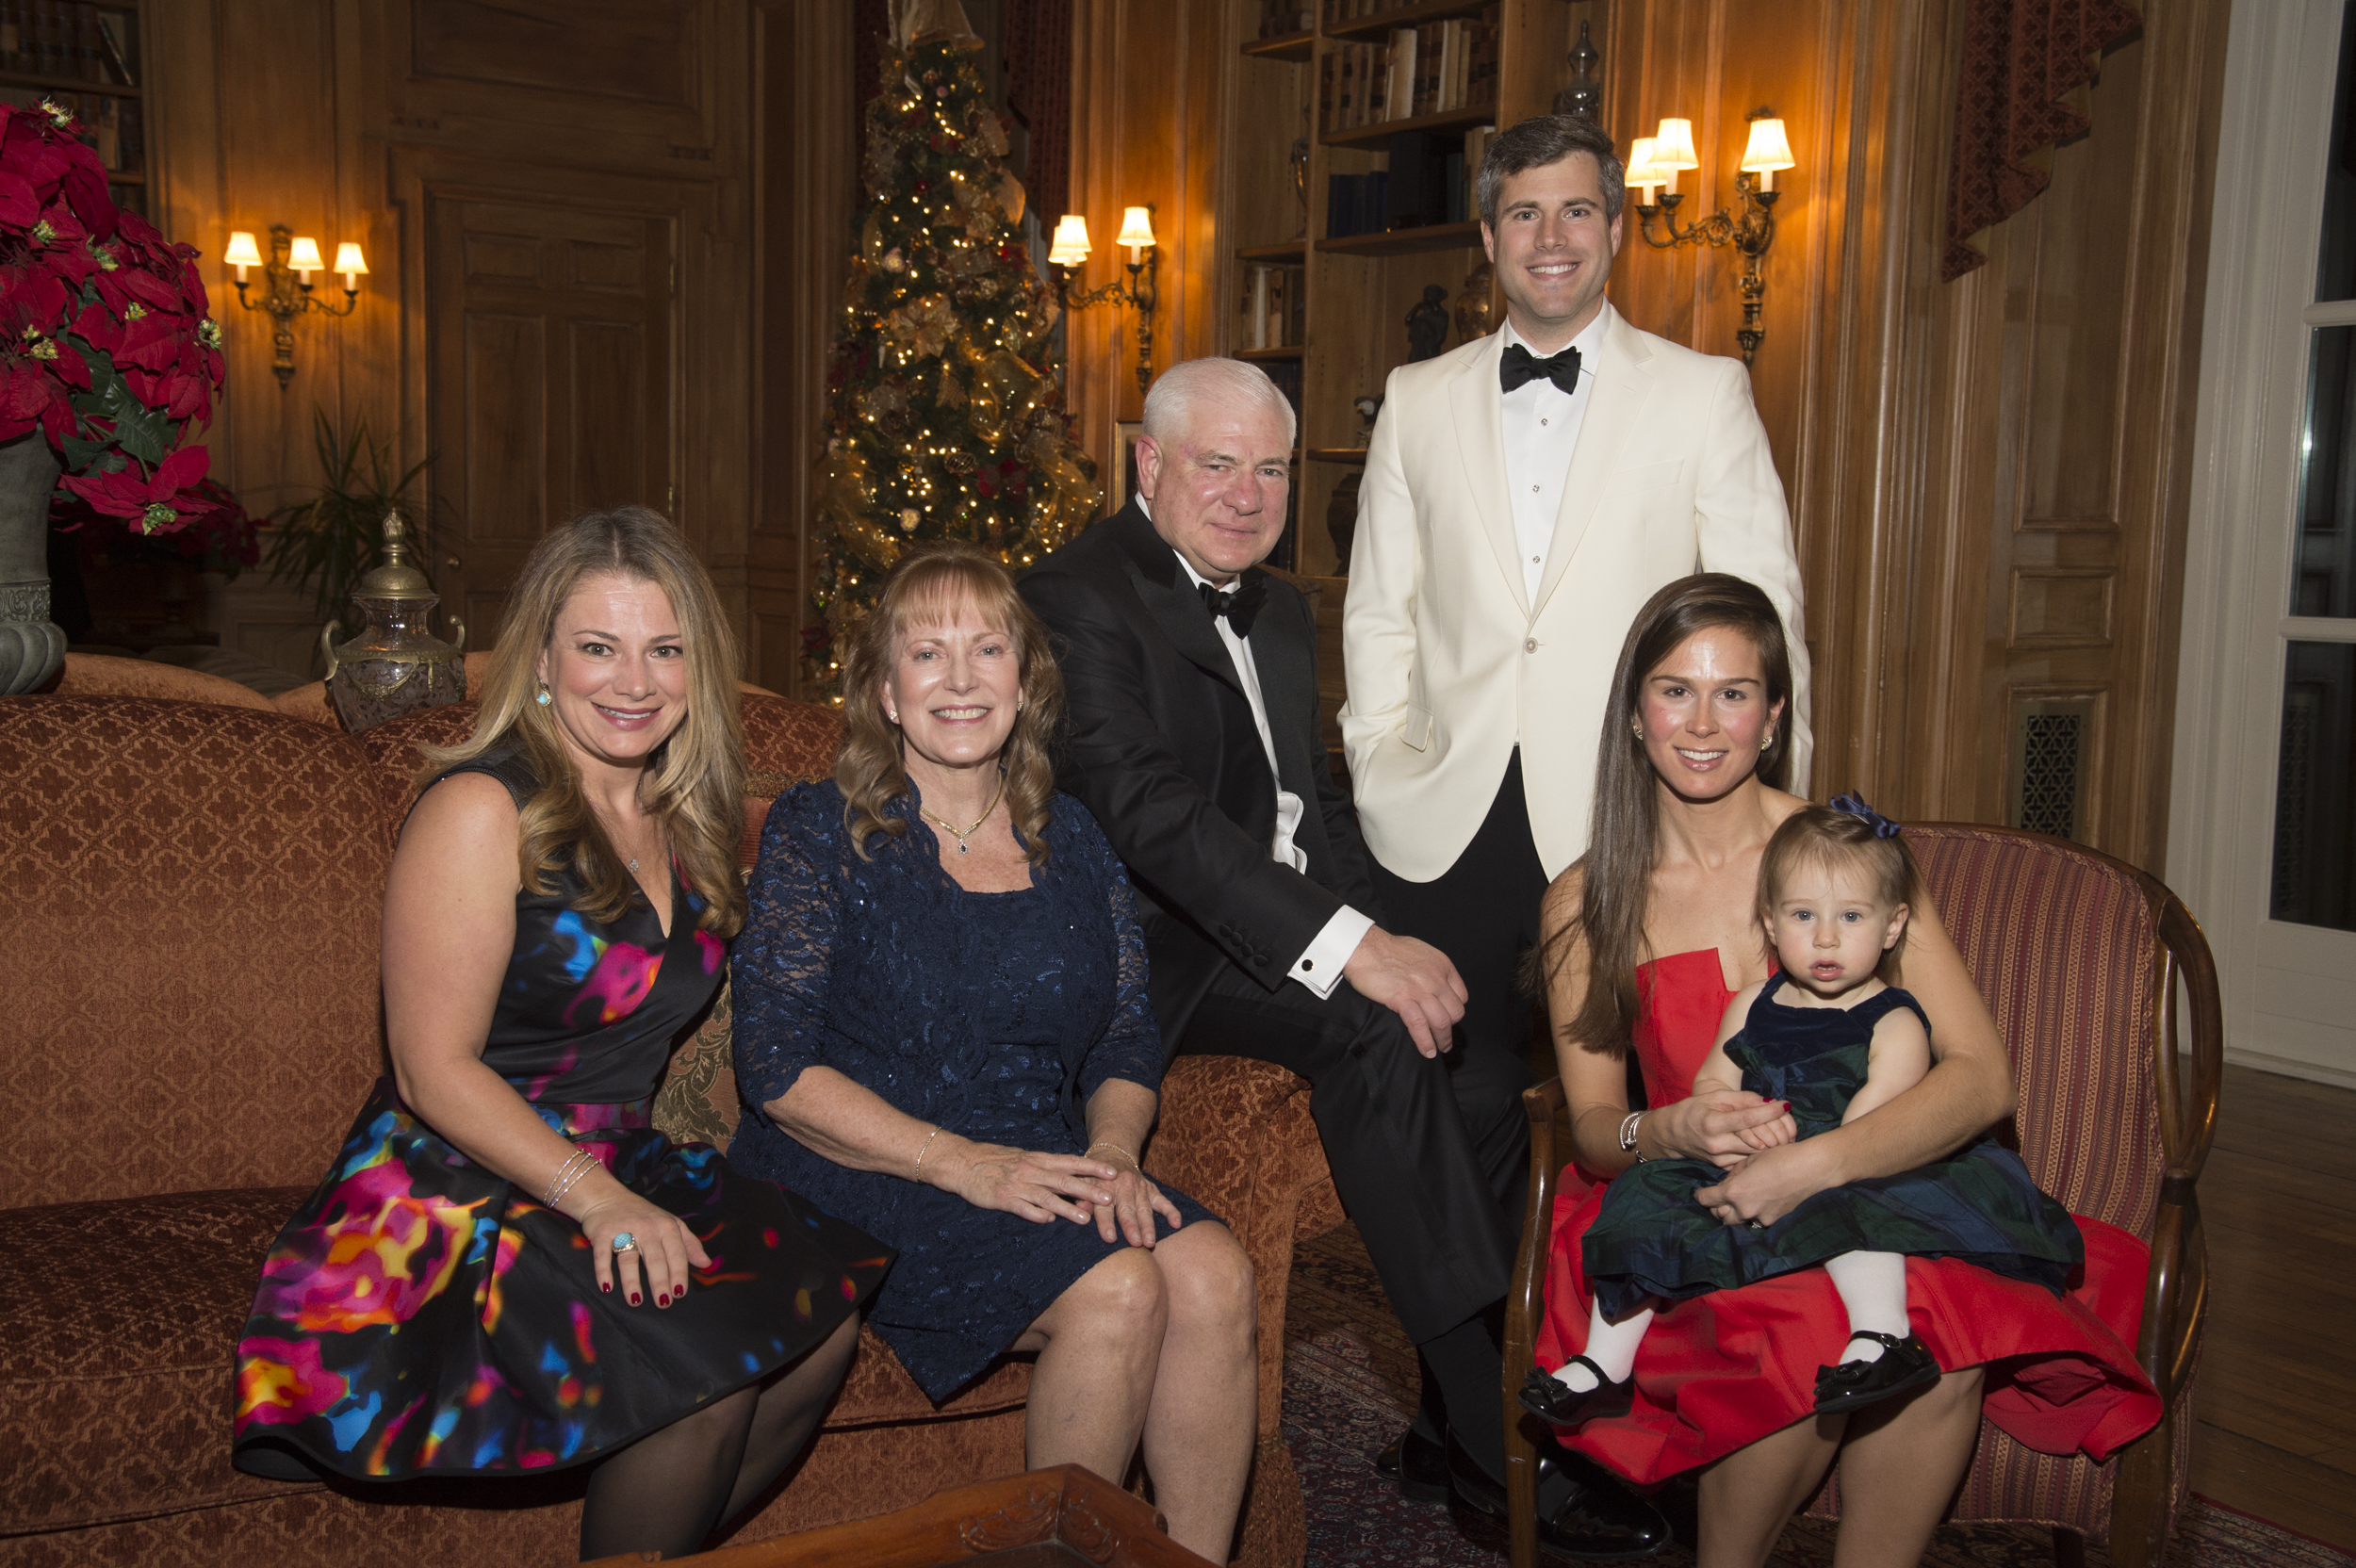 Honoree's Ted Weiss (seated) and Craig Weiss (standing) and their family.